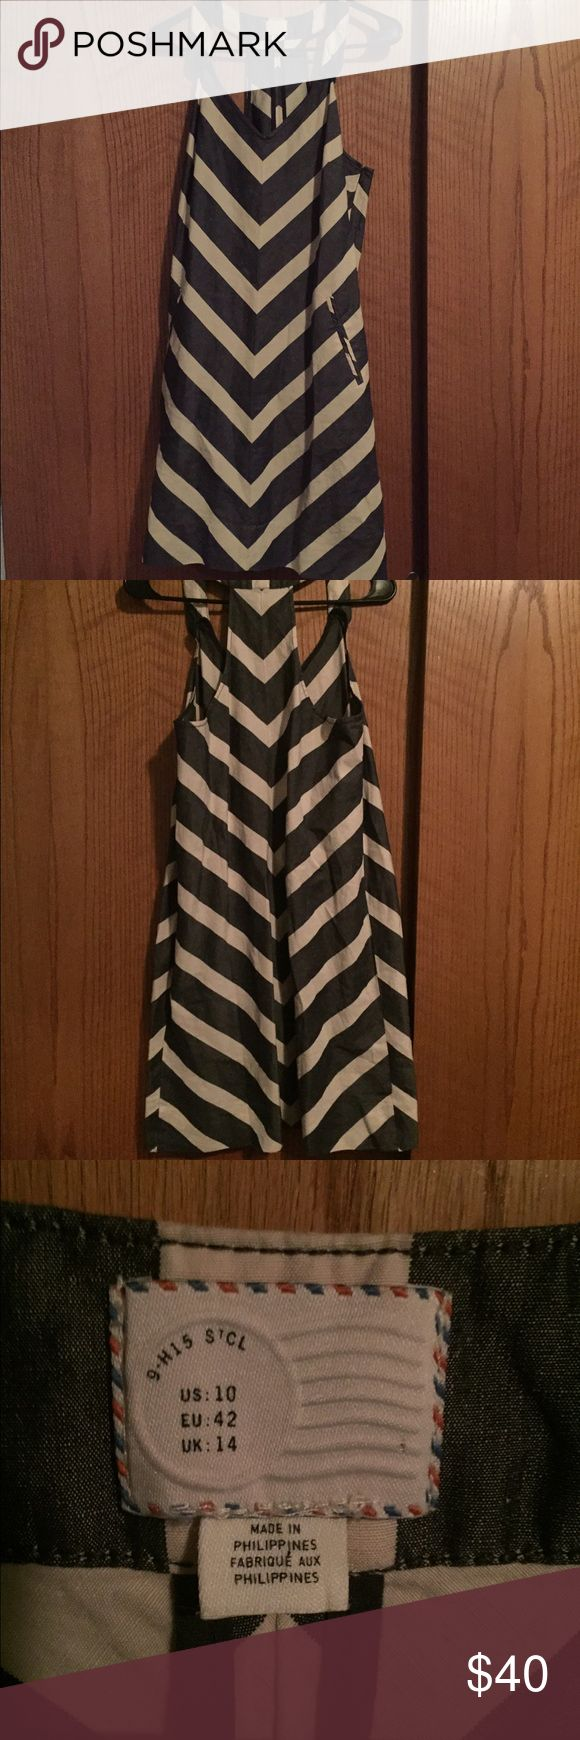 Anthropologists Postmark chevron printed dress Size 10 Anthropologie Postmark chevron print dress in great condition. Anthropologie Dresses